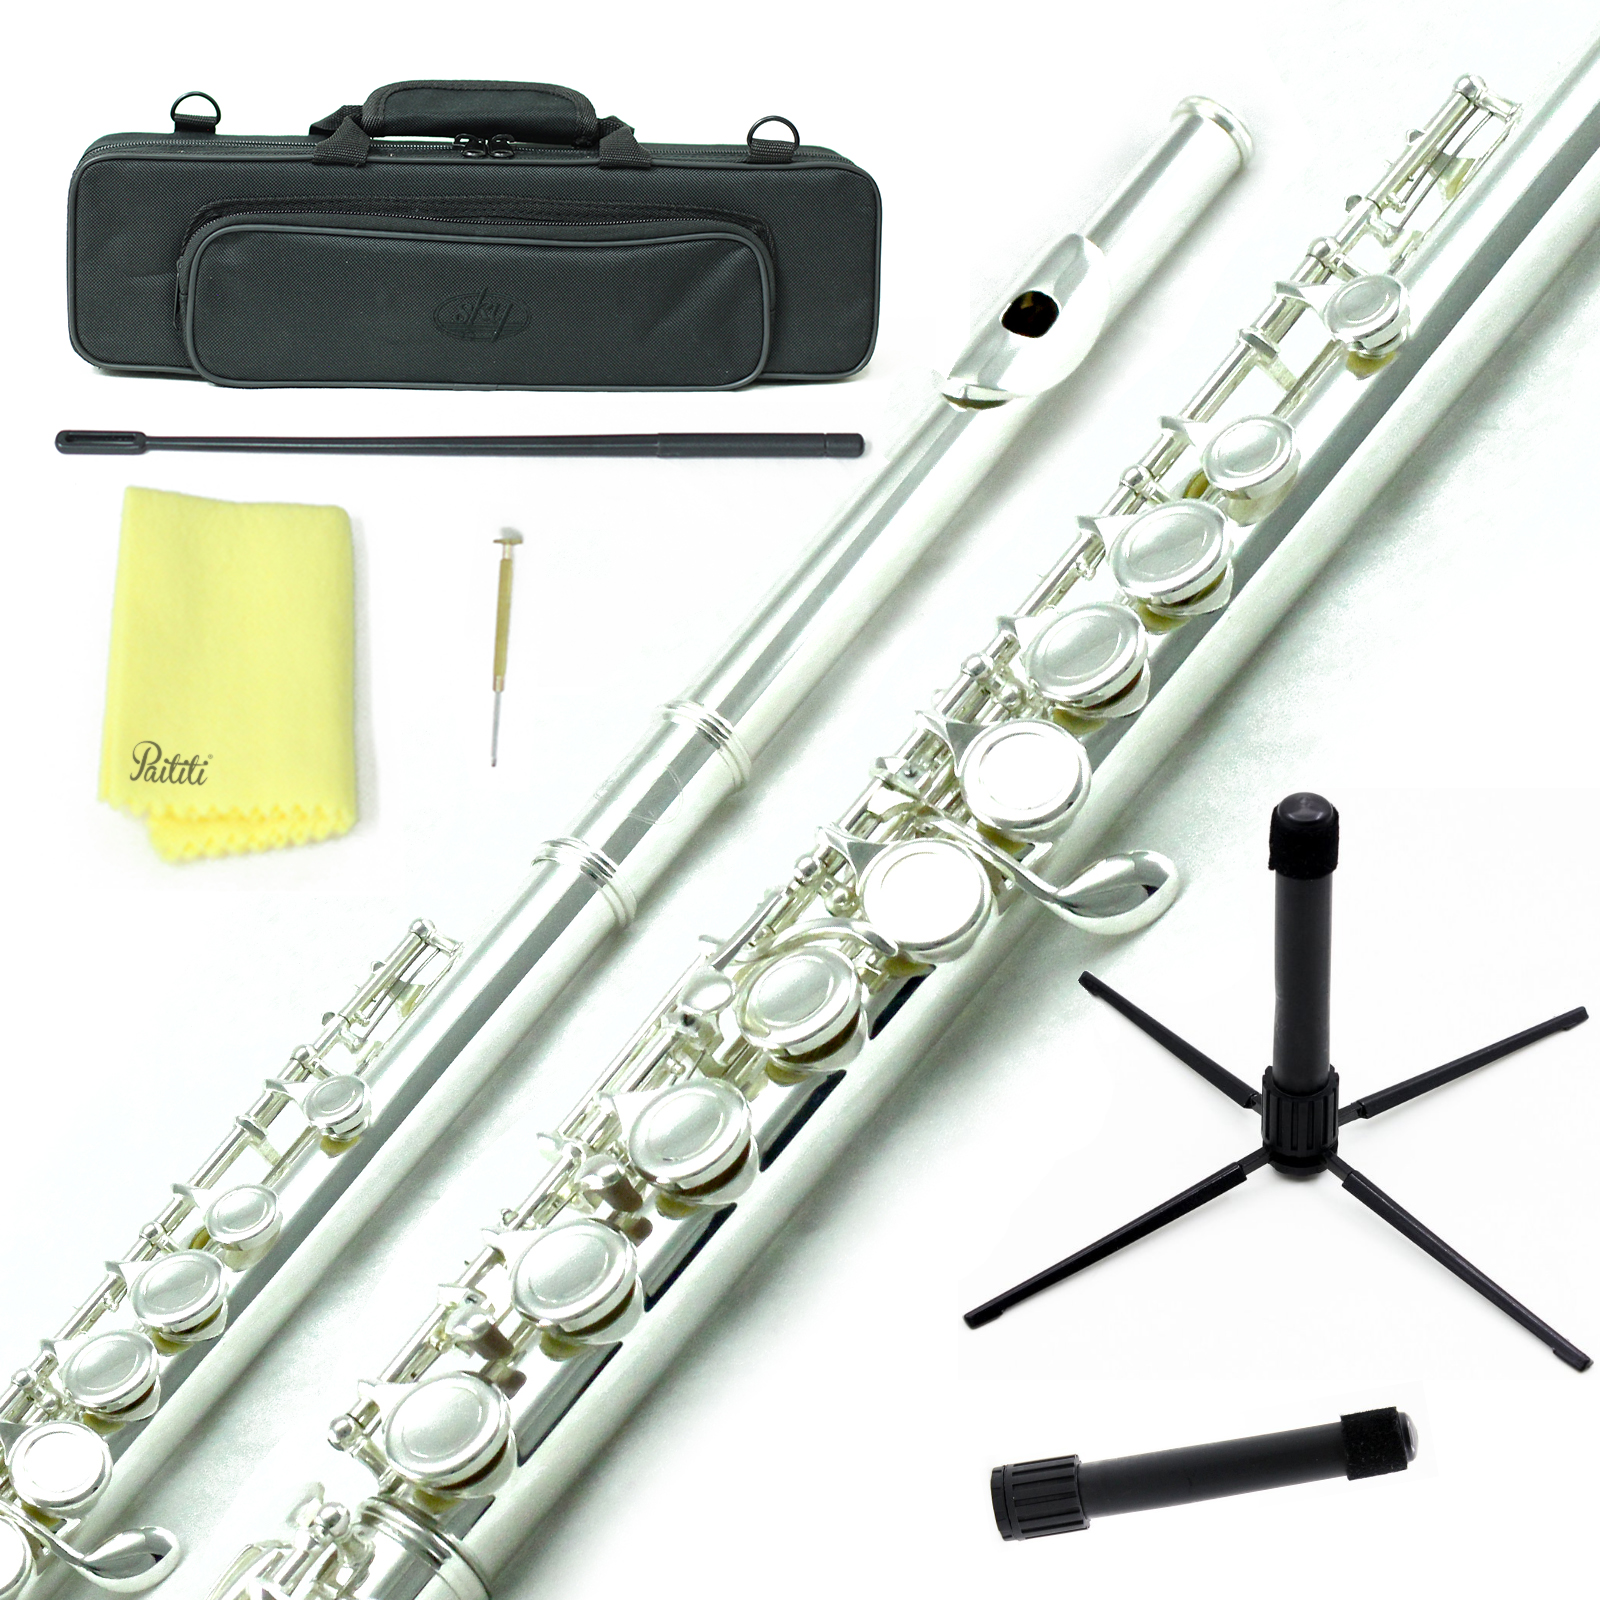 Sky Closed Hole C Flute with Lightweight Case, Cleaning Rod, Cloth, Joint Grease and Screw Driver - Silver